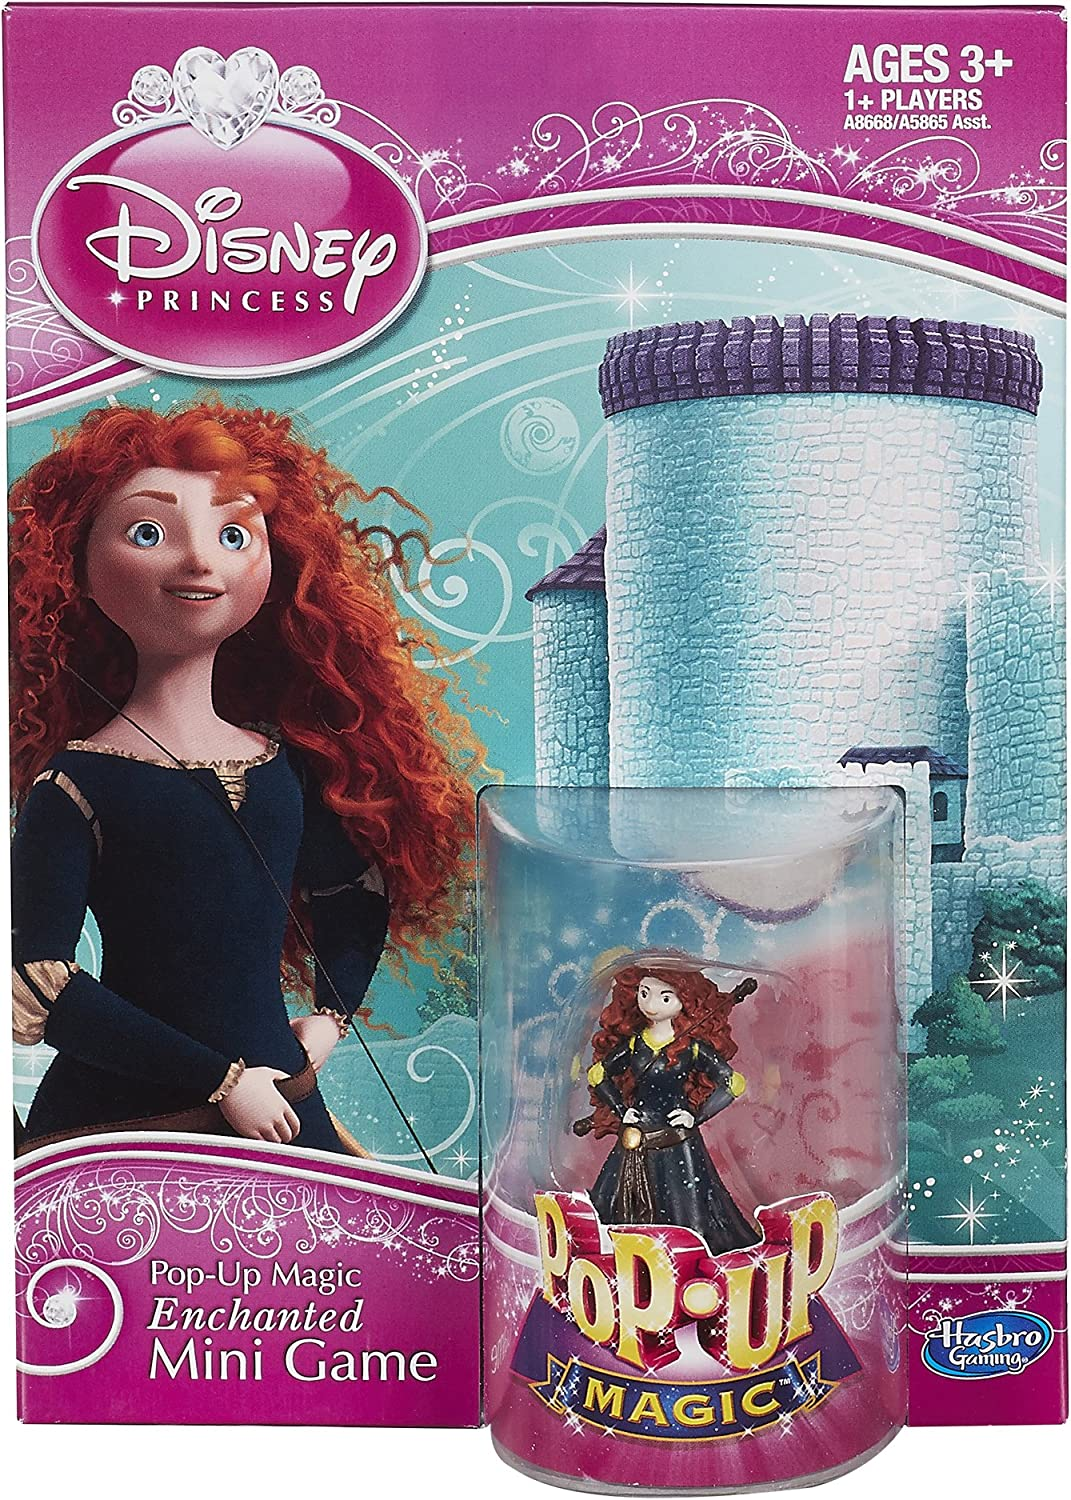 Disney PopUp Magic Enchanted Mini Game Featuring Merida